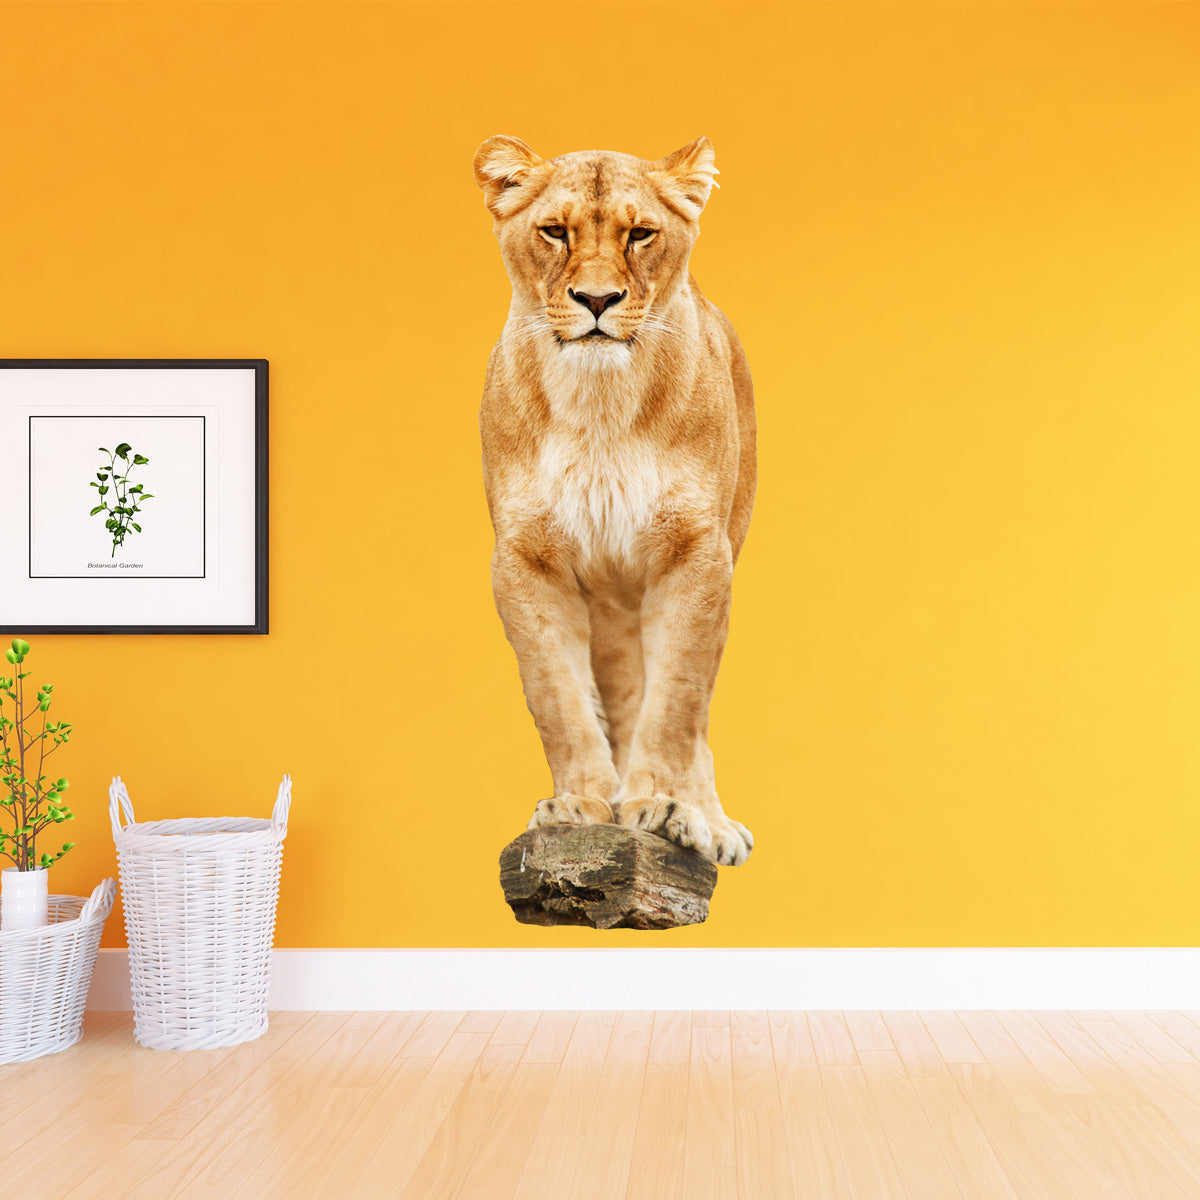 VWAQ Lioness on Perch Peel and Stick Vinyl Wall Decal - G502 - VWAQ Vinyl Wall Art Quotes and Prints